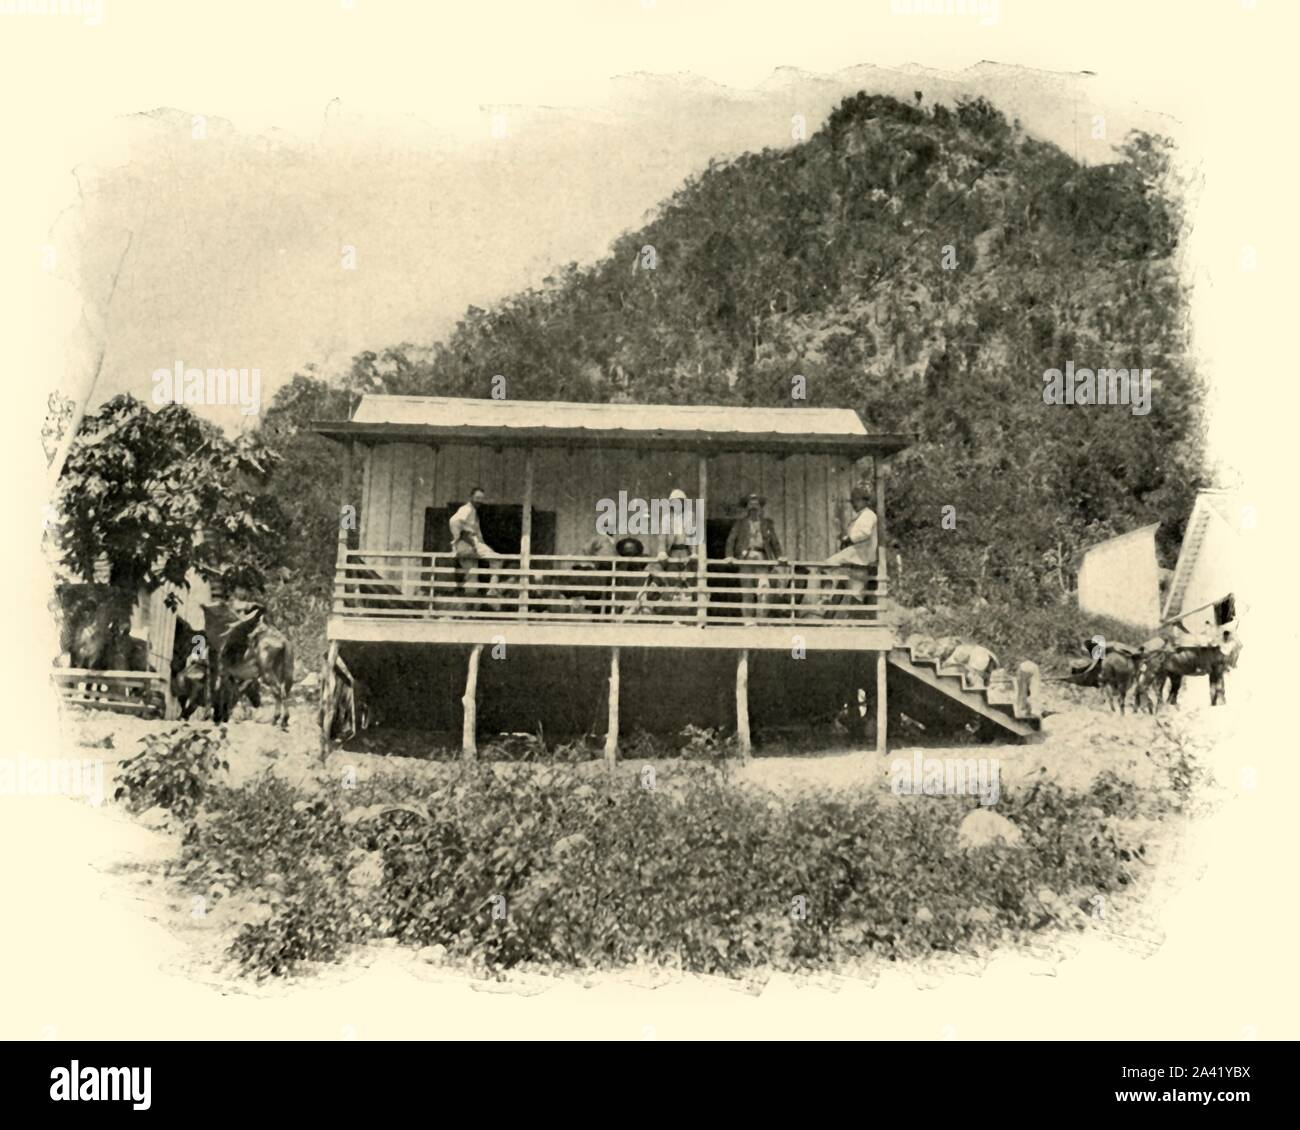 """Journal"" Headquarters, Daiquiri', Spanish-American War, June 1898, (1899). On 22 June 1898, American troops landed at the small village of Daiquirí near Santiago de Cuba and attacked the Spanish troops stationed there. This building may have been used by the journalists covering the war. From ""The Little I saw of Cuba"" by Burr McIntosh, with photographs by the author. (In 1898, American actor and journalist William Burr McIntosh went to Cuba to cover the Spanish-American War for ""Leslie's Weekly"" as a reporter and photographer). [F. Tennyson Neely, London &a Stock Photo"